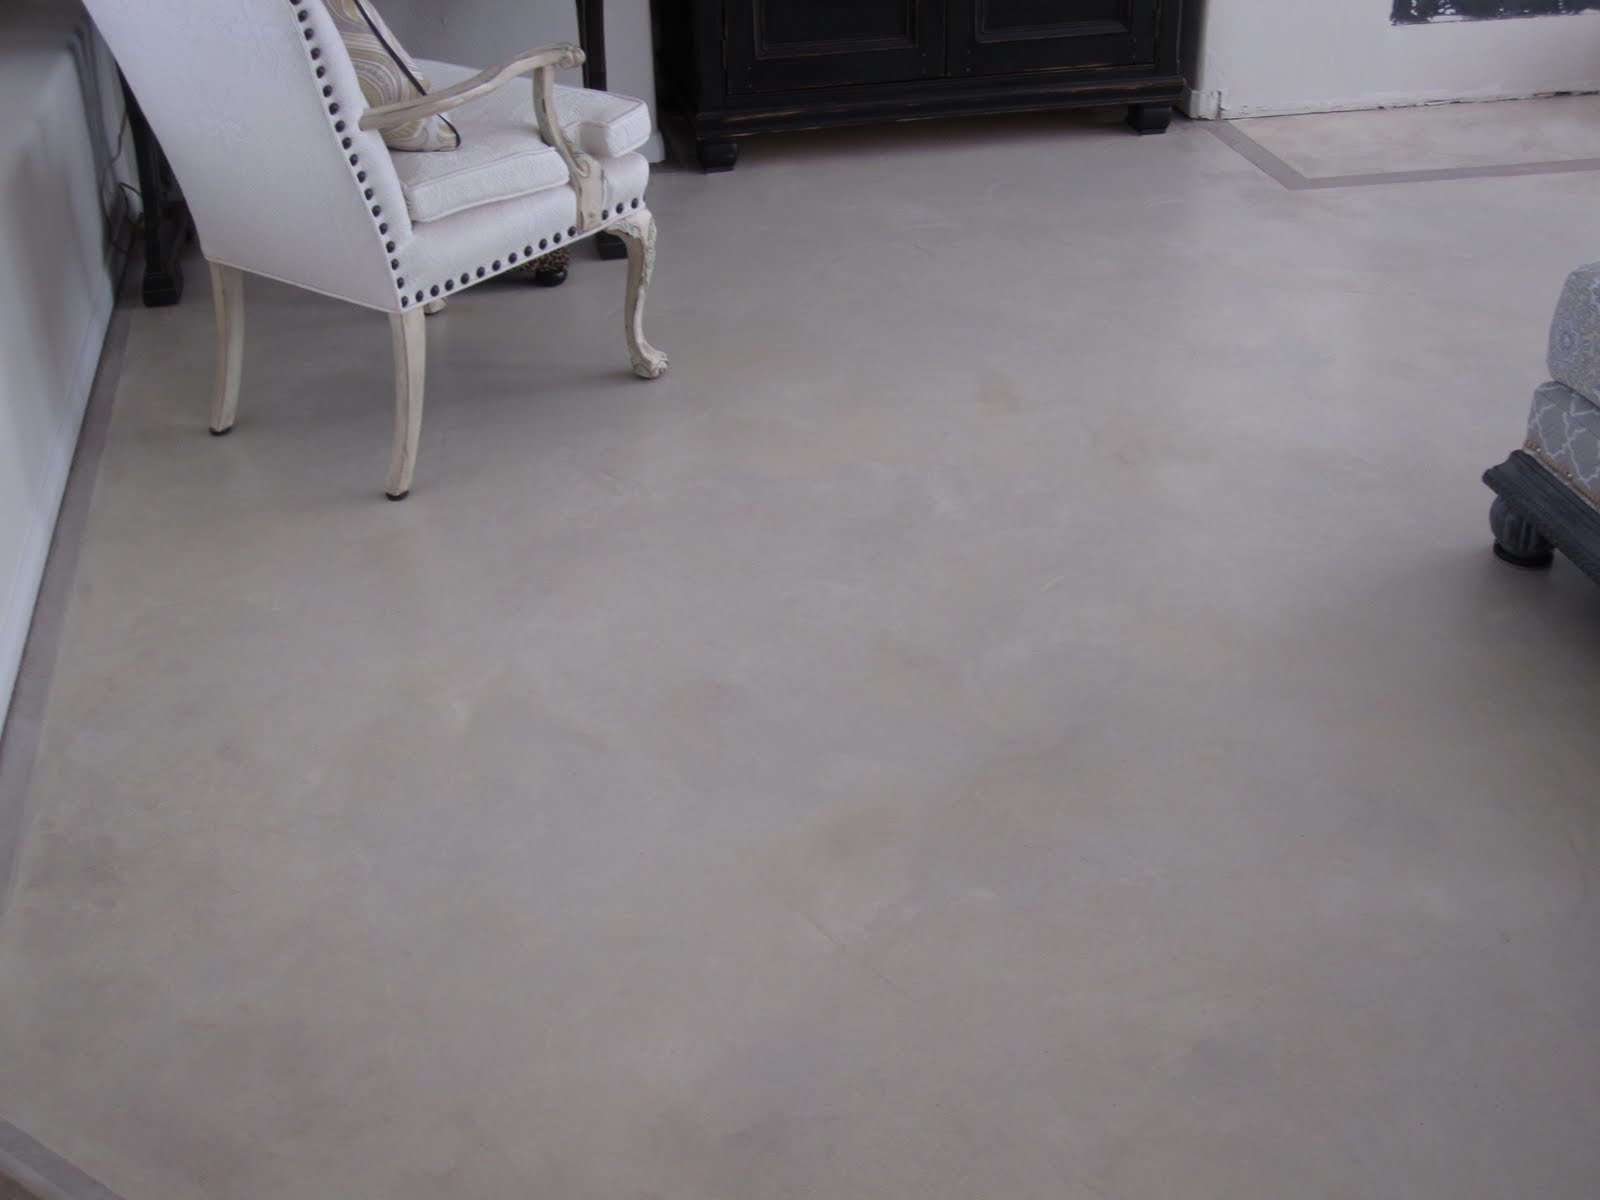 Anythingology painting stripes on concrete floors for Painting on concrete floor